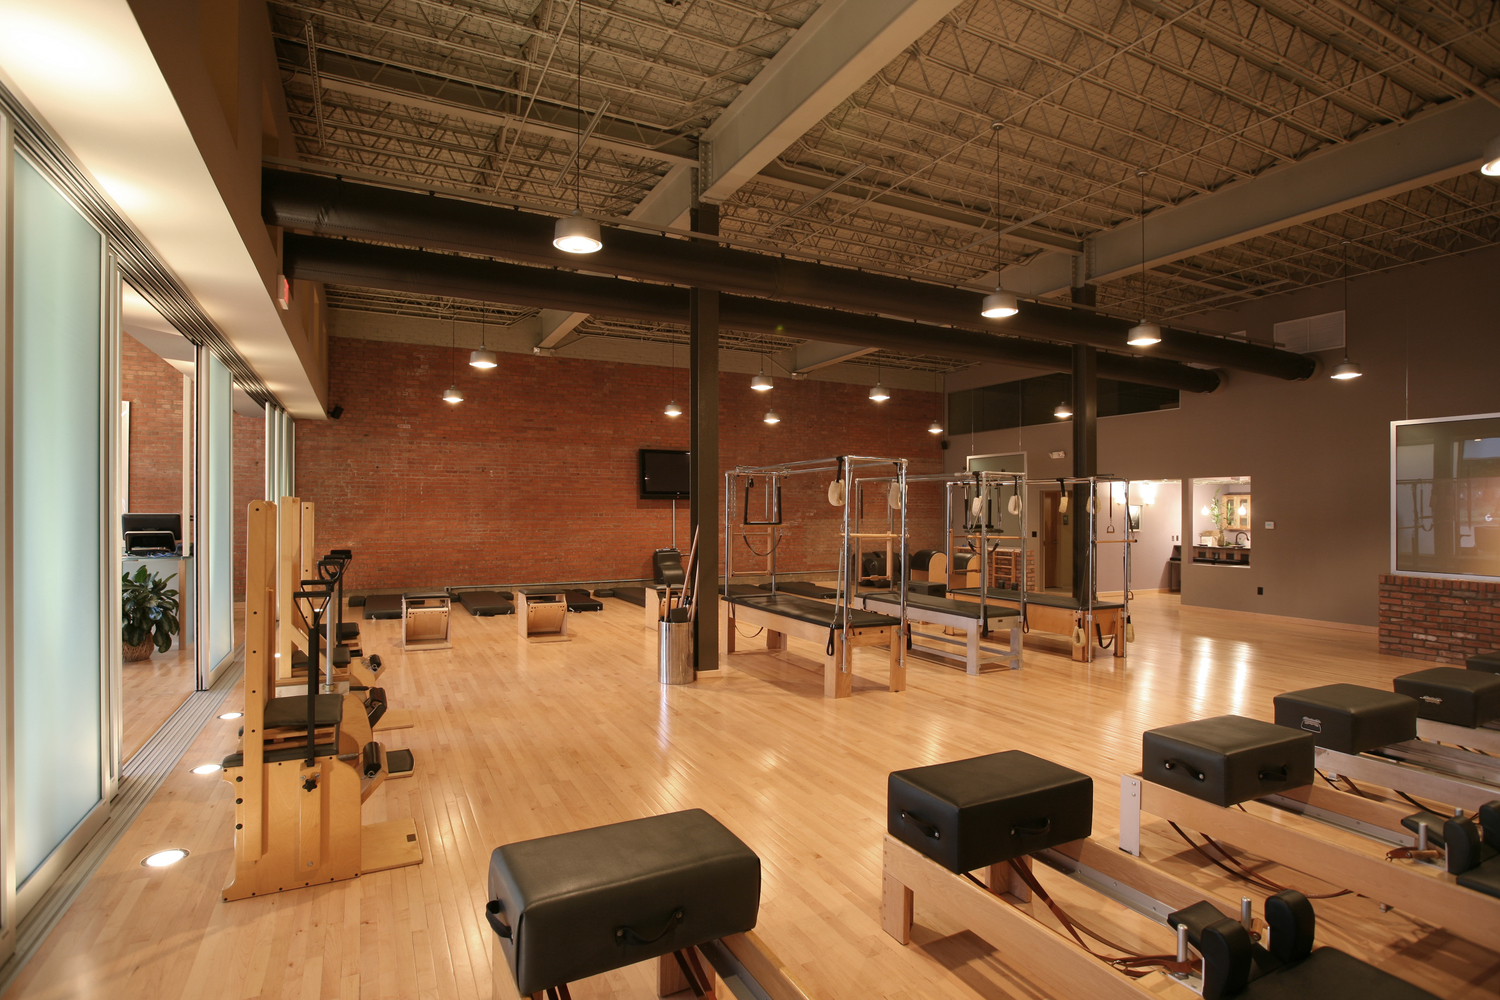 balance studio tyler – pilates studio architect – commercial interior architect tyler – butler architectural group